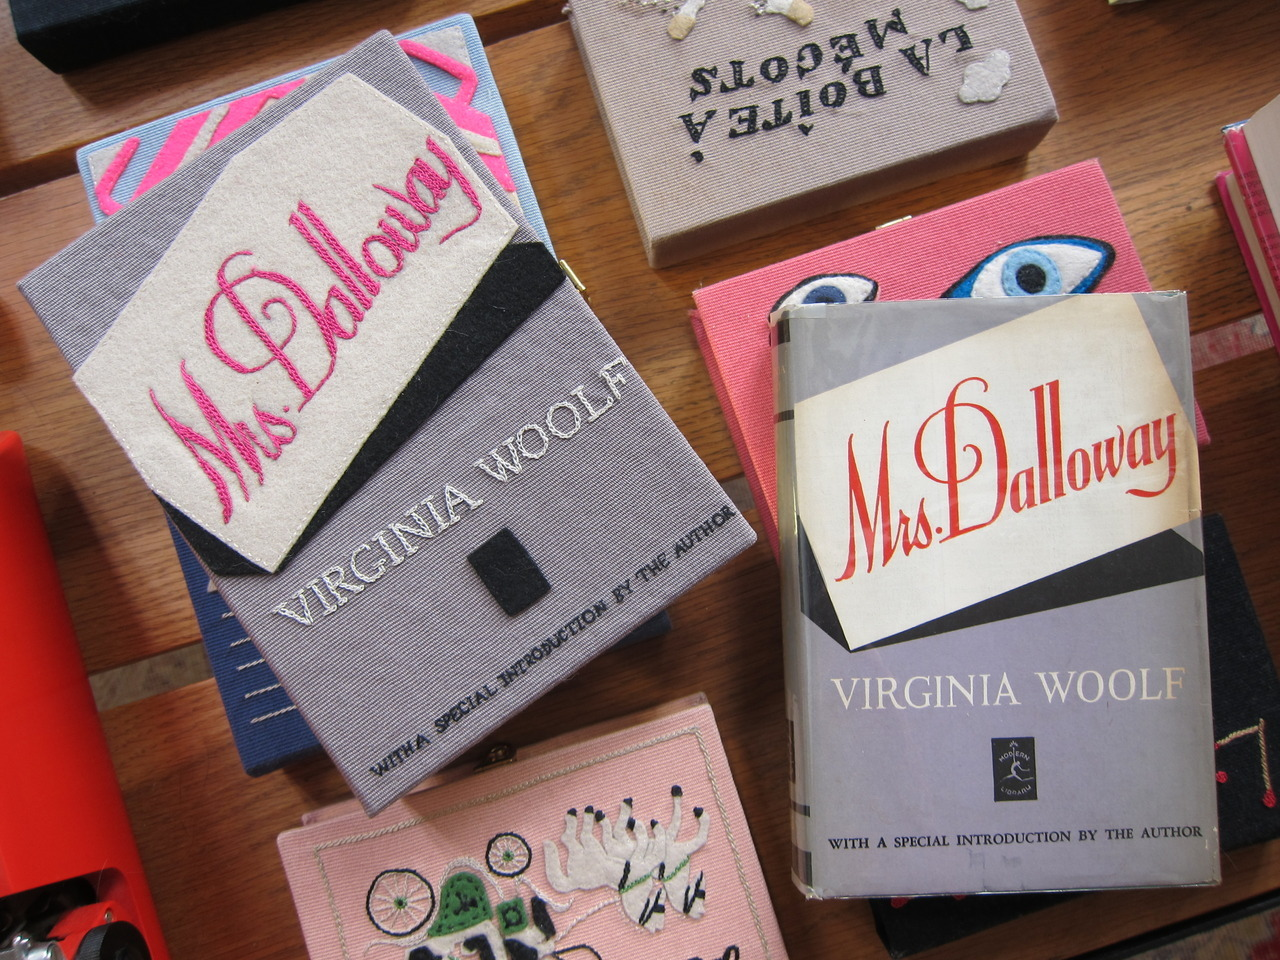 Mrs. Dalloway book-clutch and book.